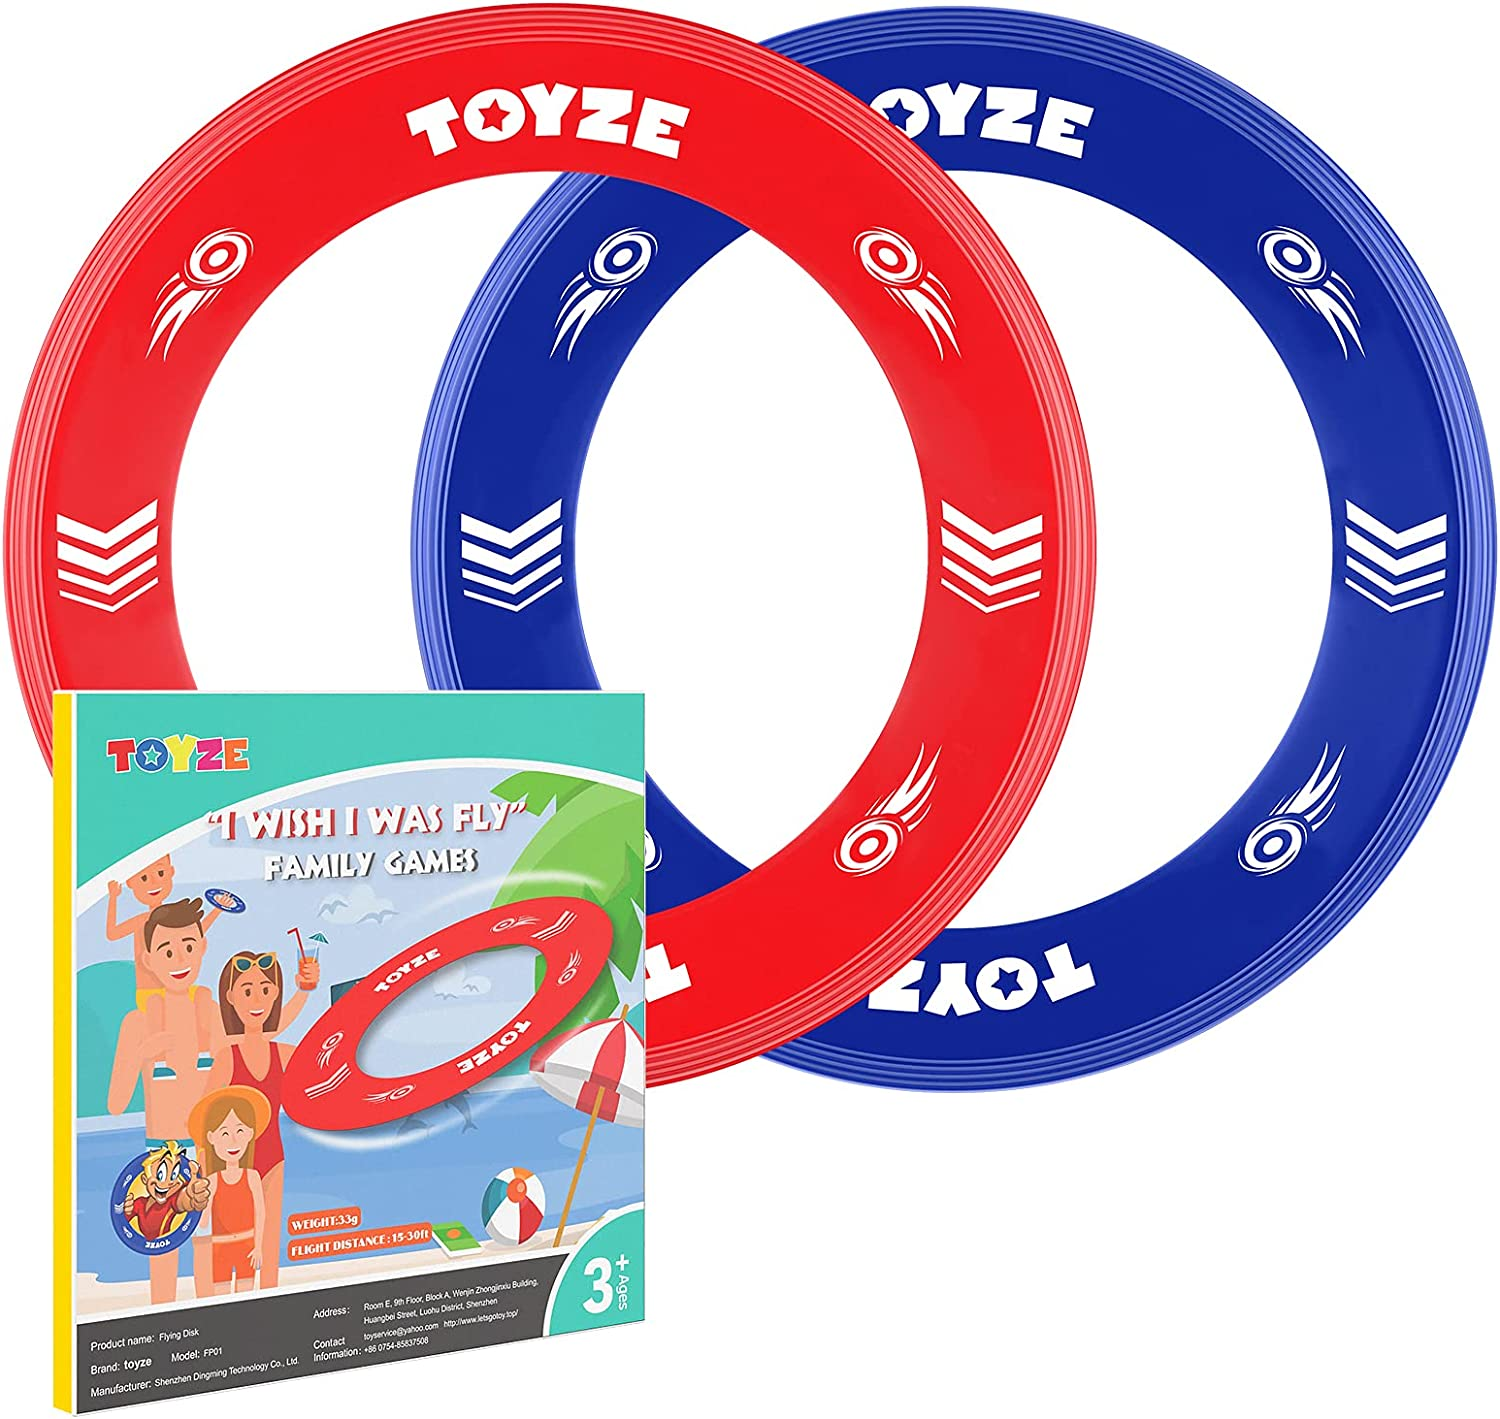 Direct store Sale price Yiblue Toyze YB Flying Disc Kids Outdoor for Games